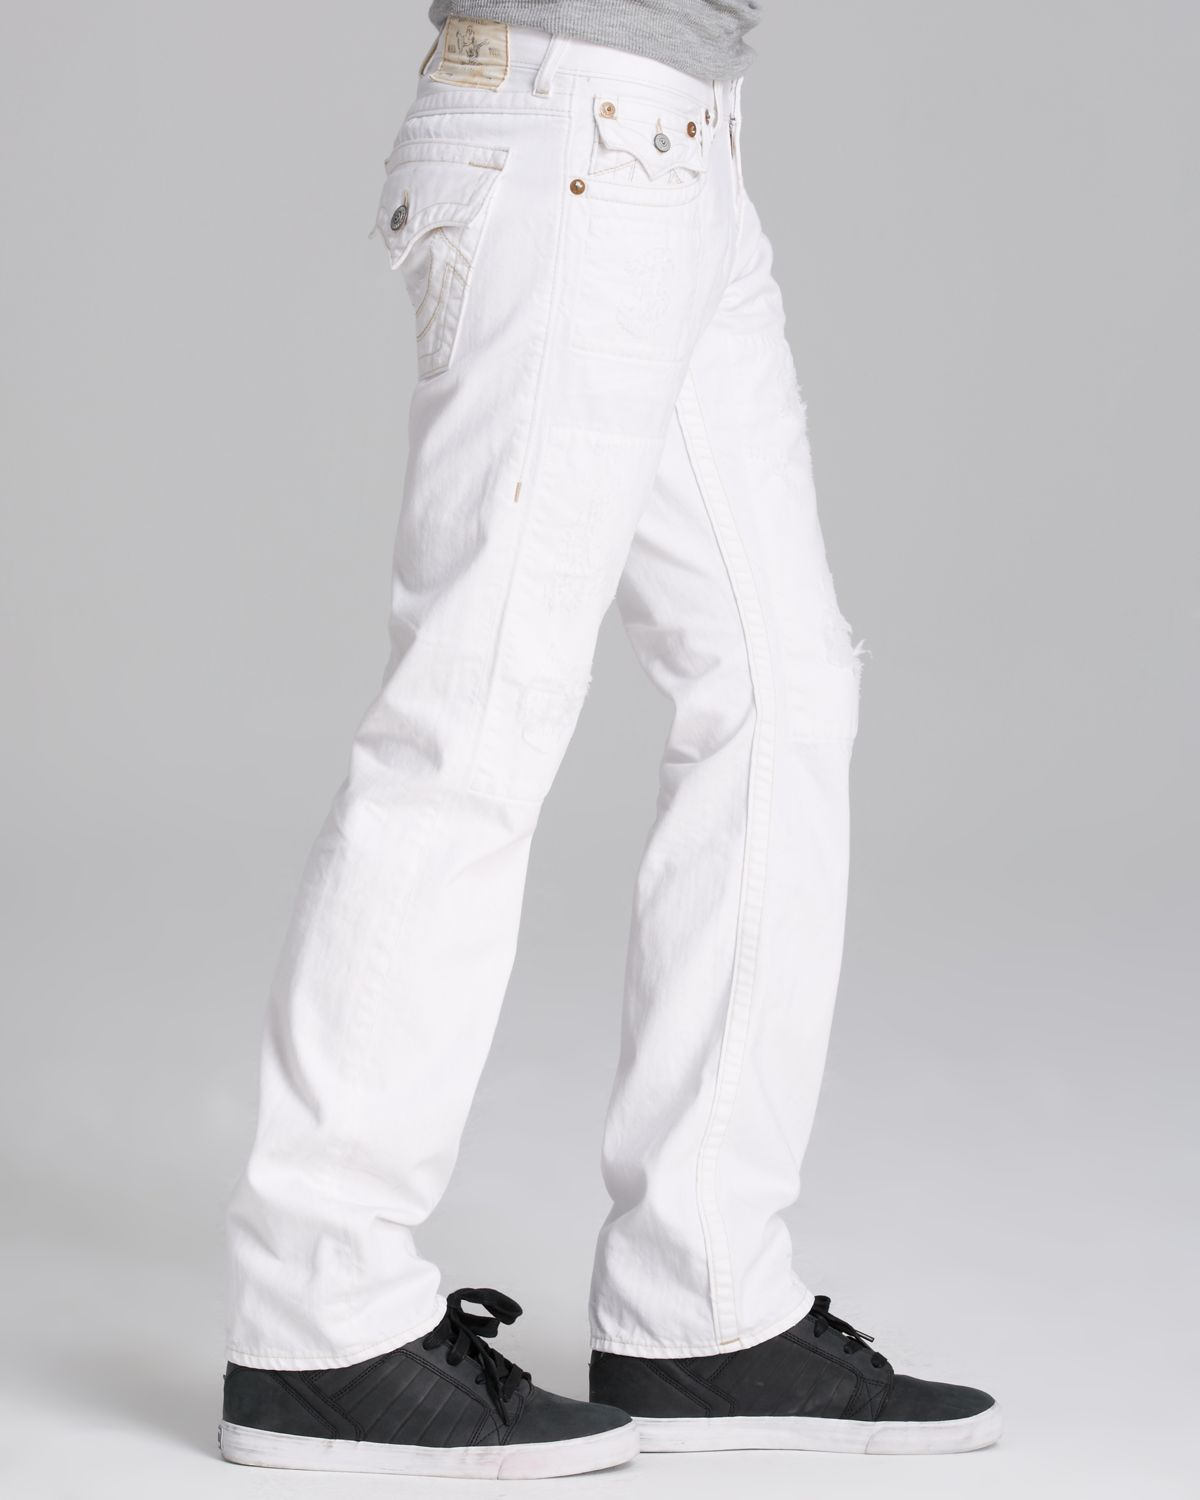 Lyst - True religion Jeans Ricky Straight Fit in Ivory ...